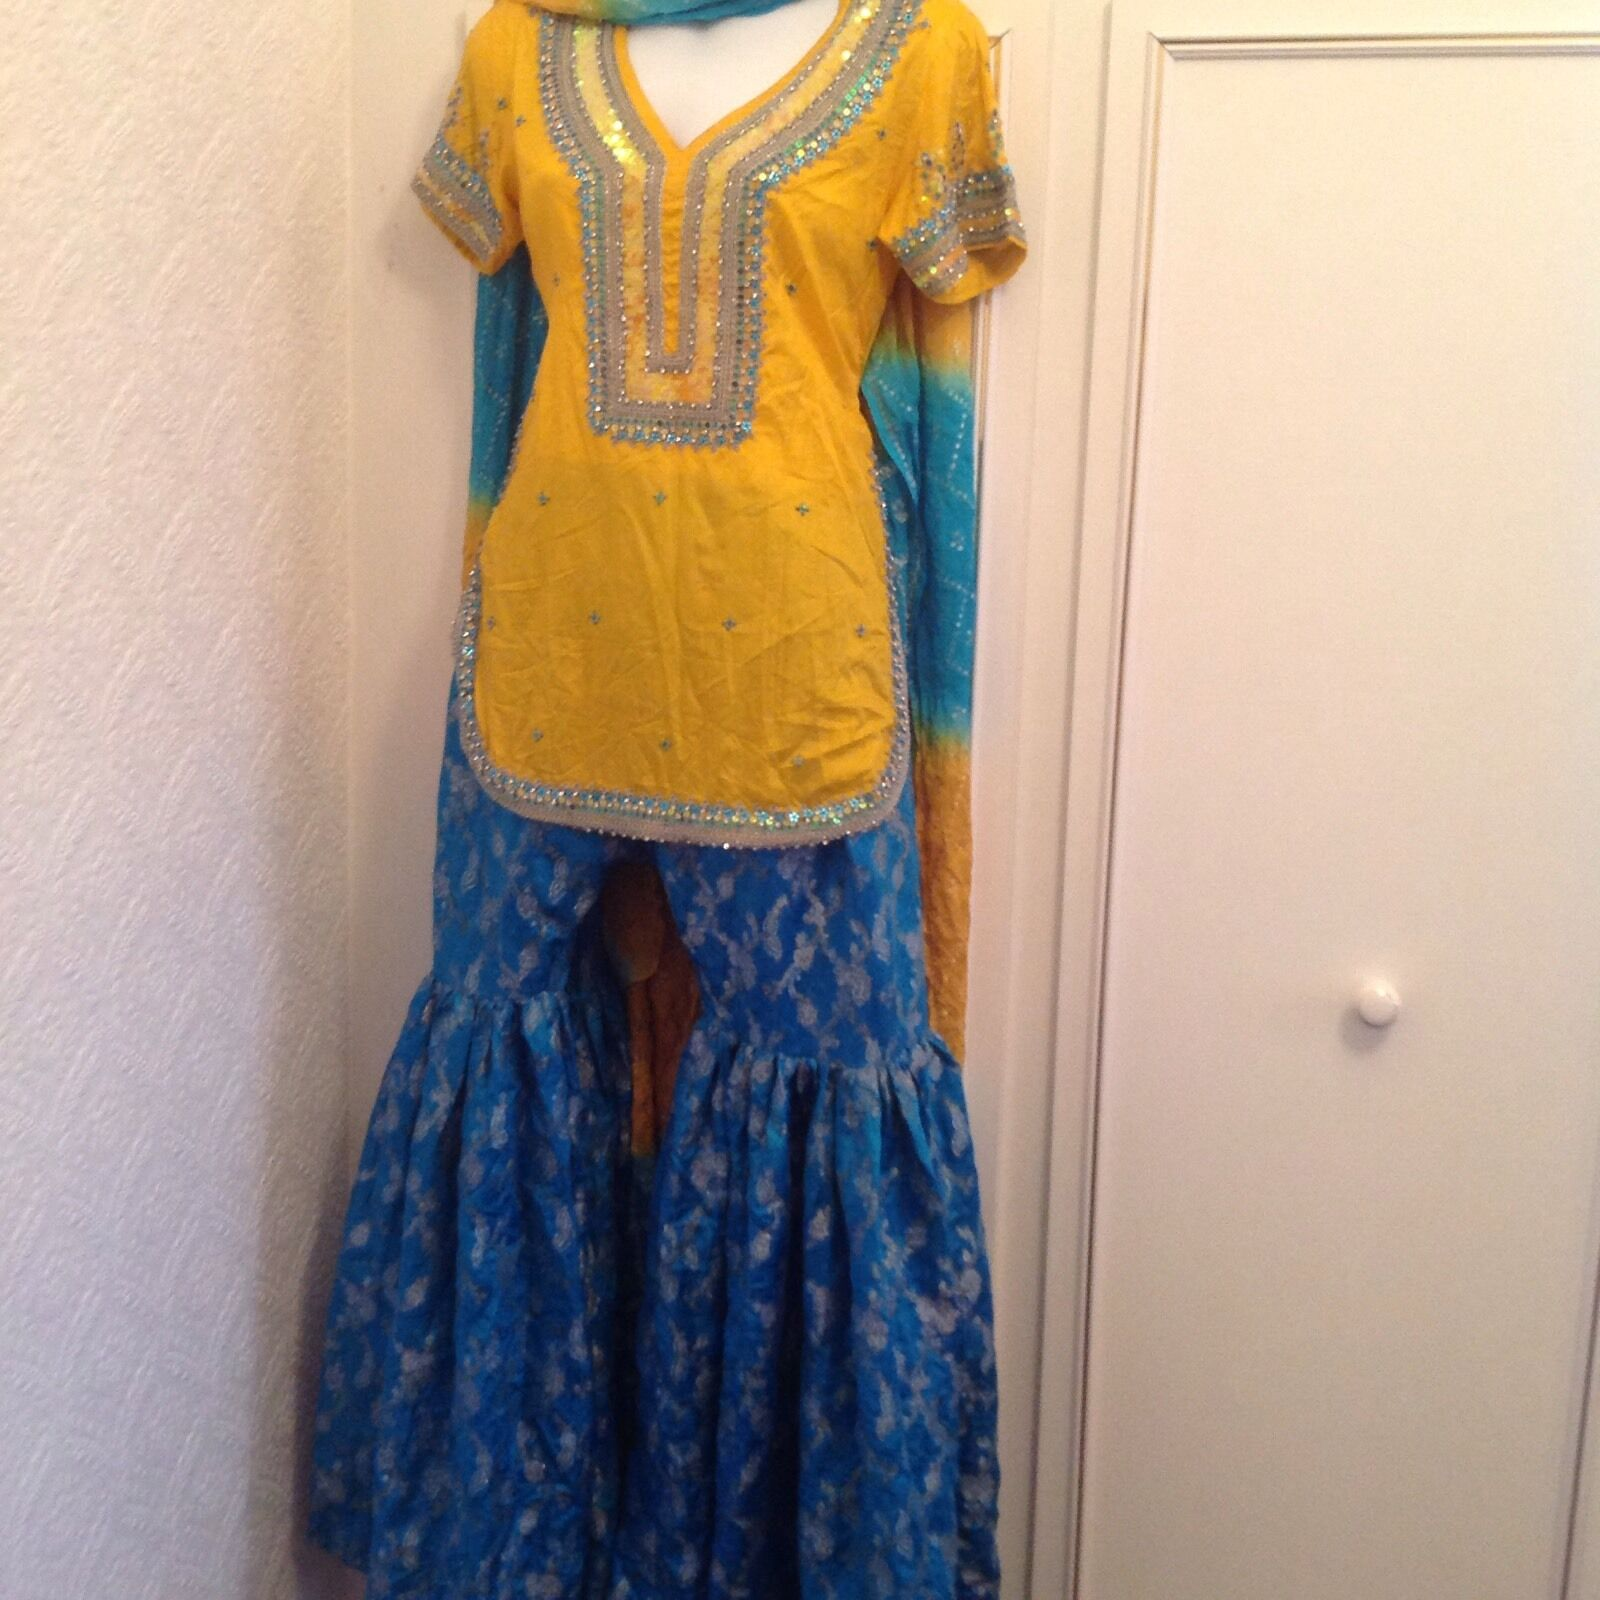 Asian Women's Yellow & bluee Sharala Outfit Size 10 Party wedding Eid Diwali